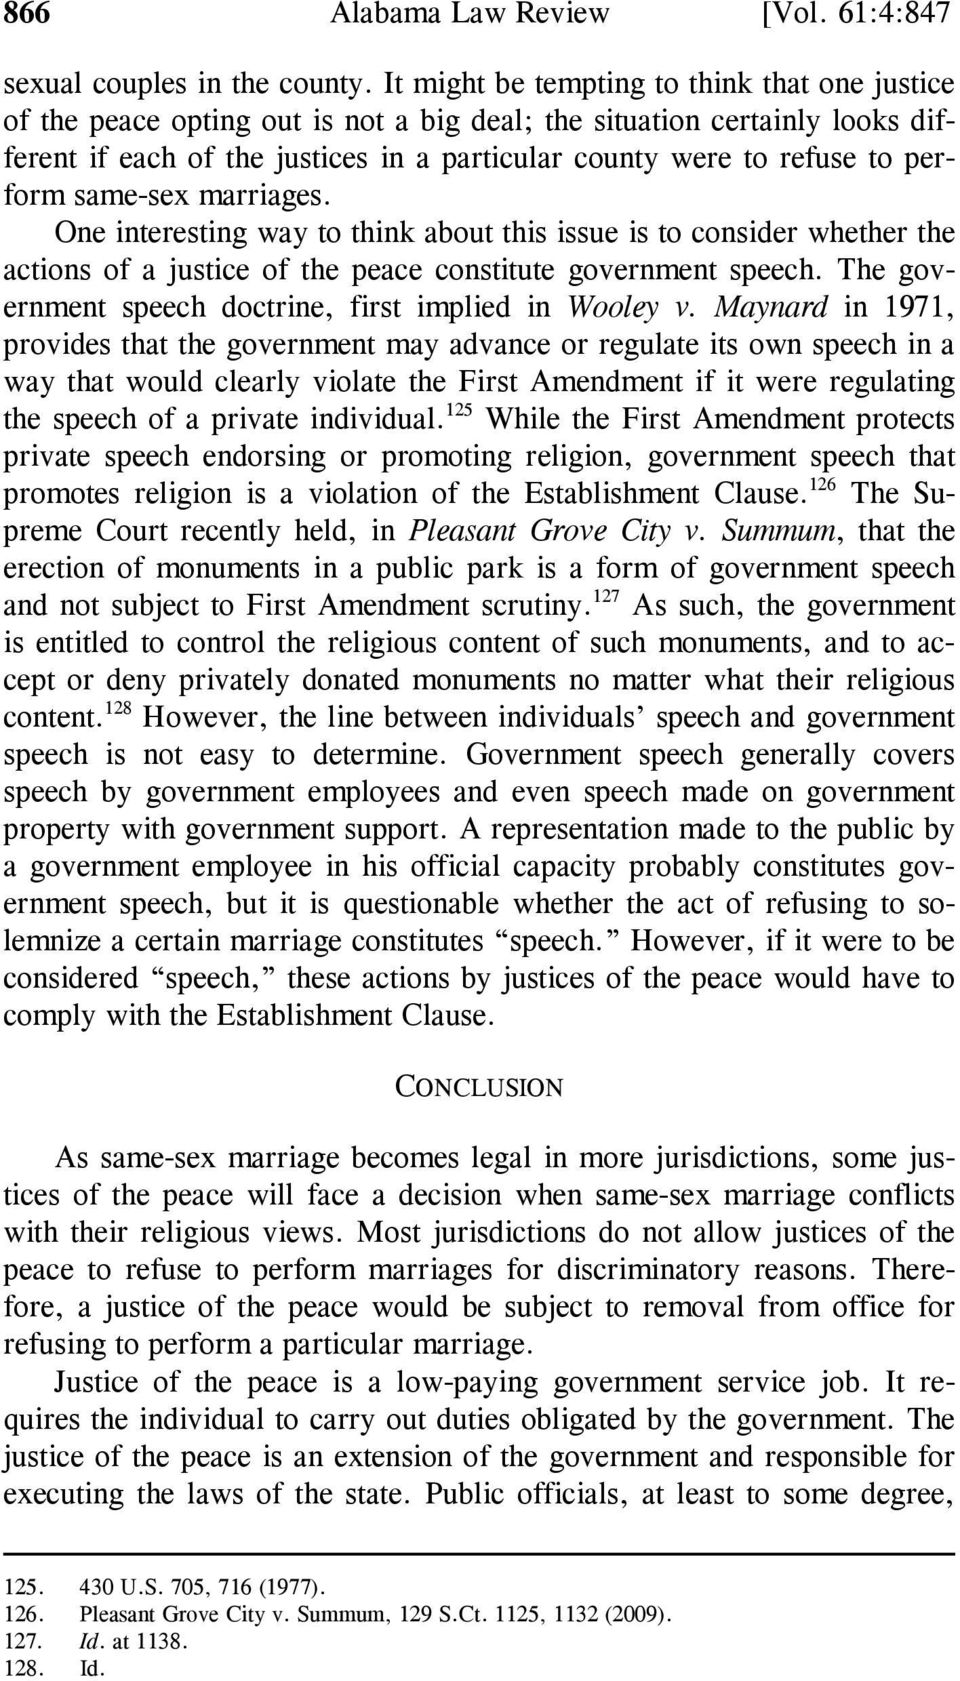 perform same-sex marriages. One interesting way to think about this issue is to consider whether the actions of a justice of the peace constitute government speech.